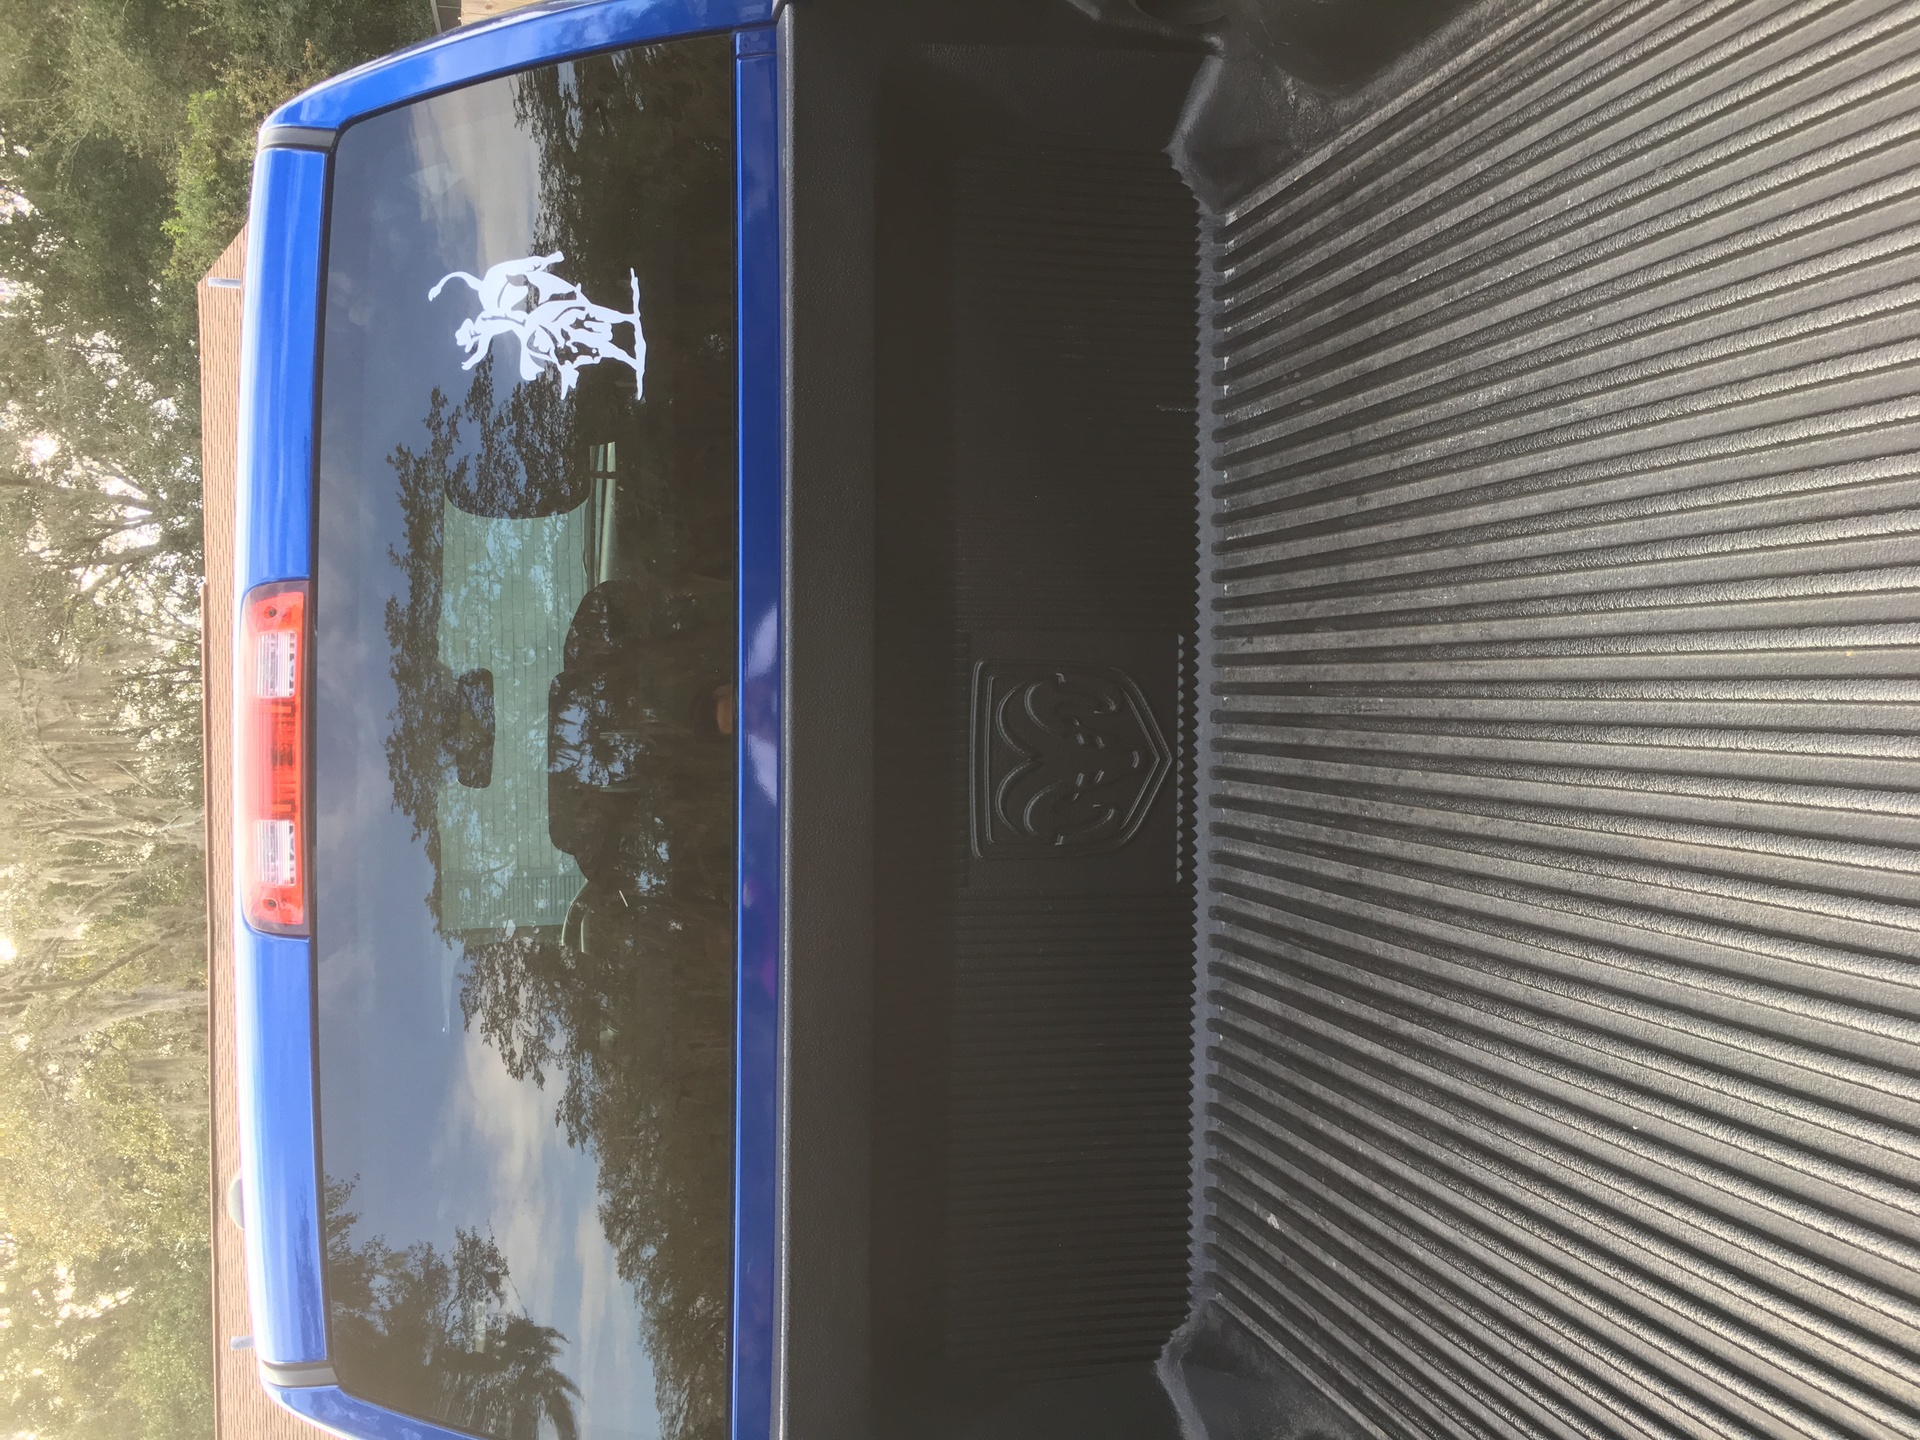 Windell mejia's photograph of their Rodeo Cowboy Riding Bull Sticker